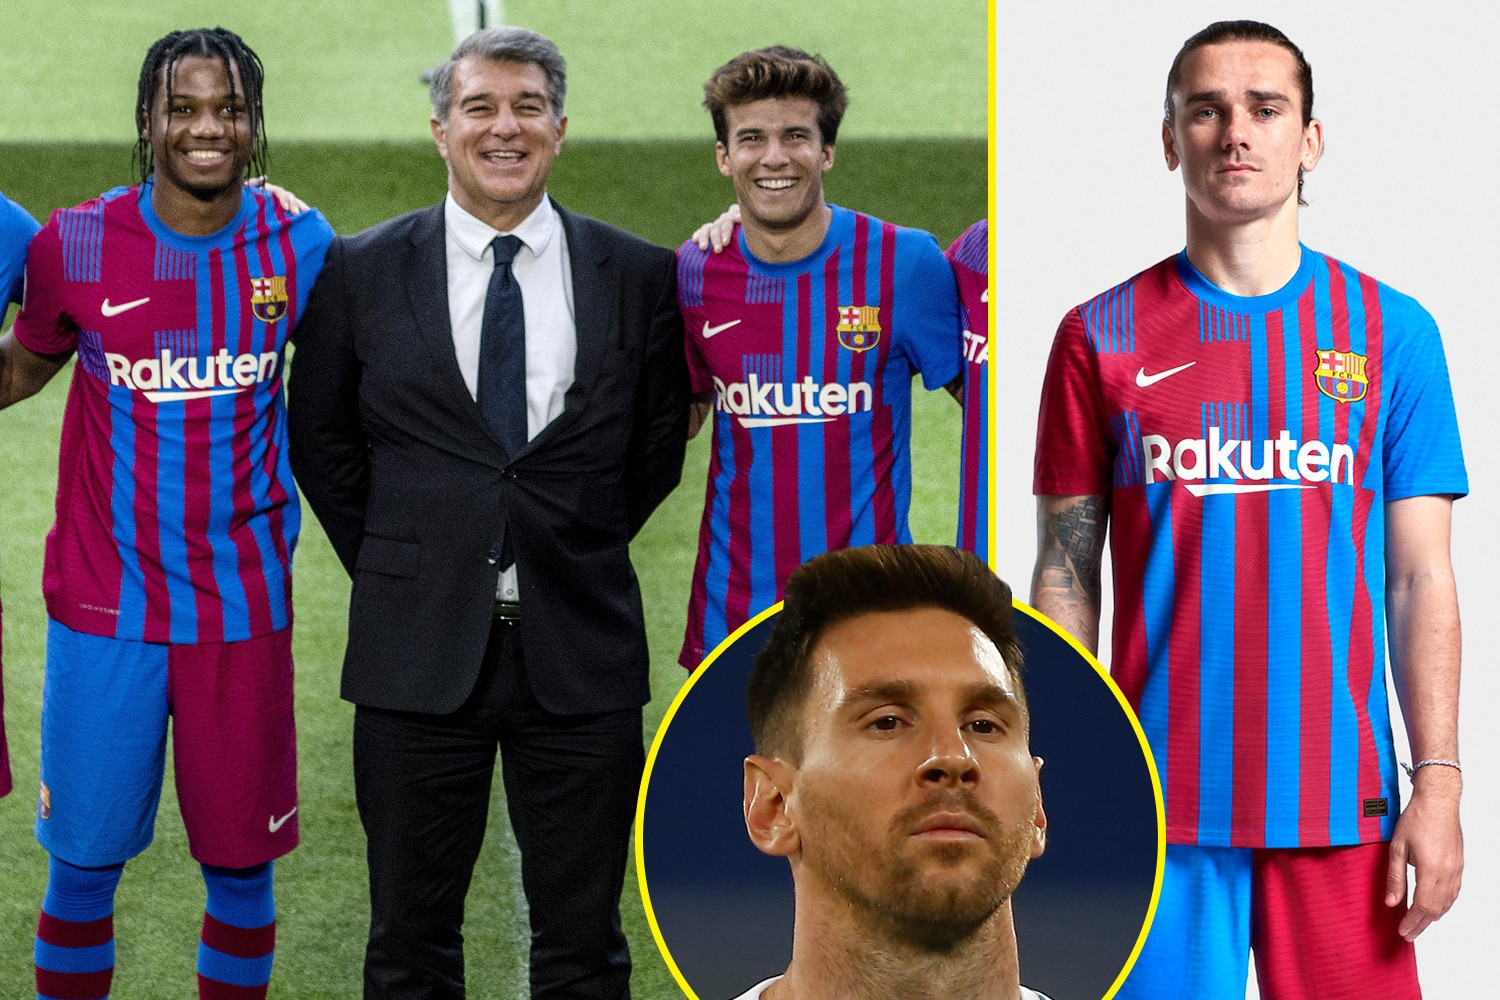 Barcelona Release New Kit For 2021 22 Based On Club Crest But Lionel Messi Absent From Promoting It With Superstar S Future Still In Doubt